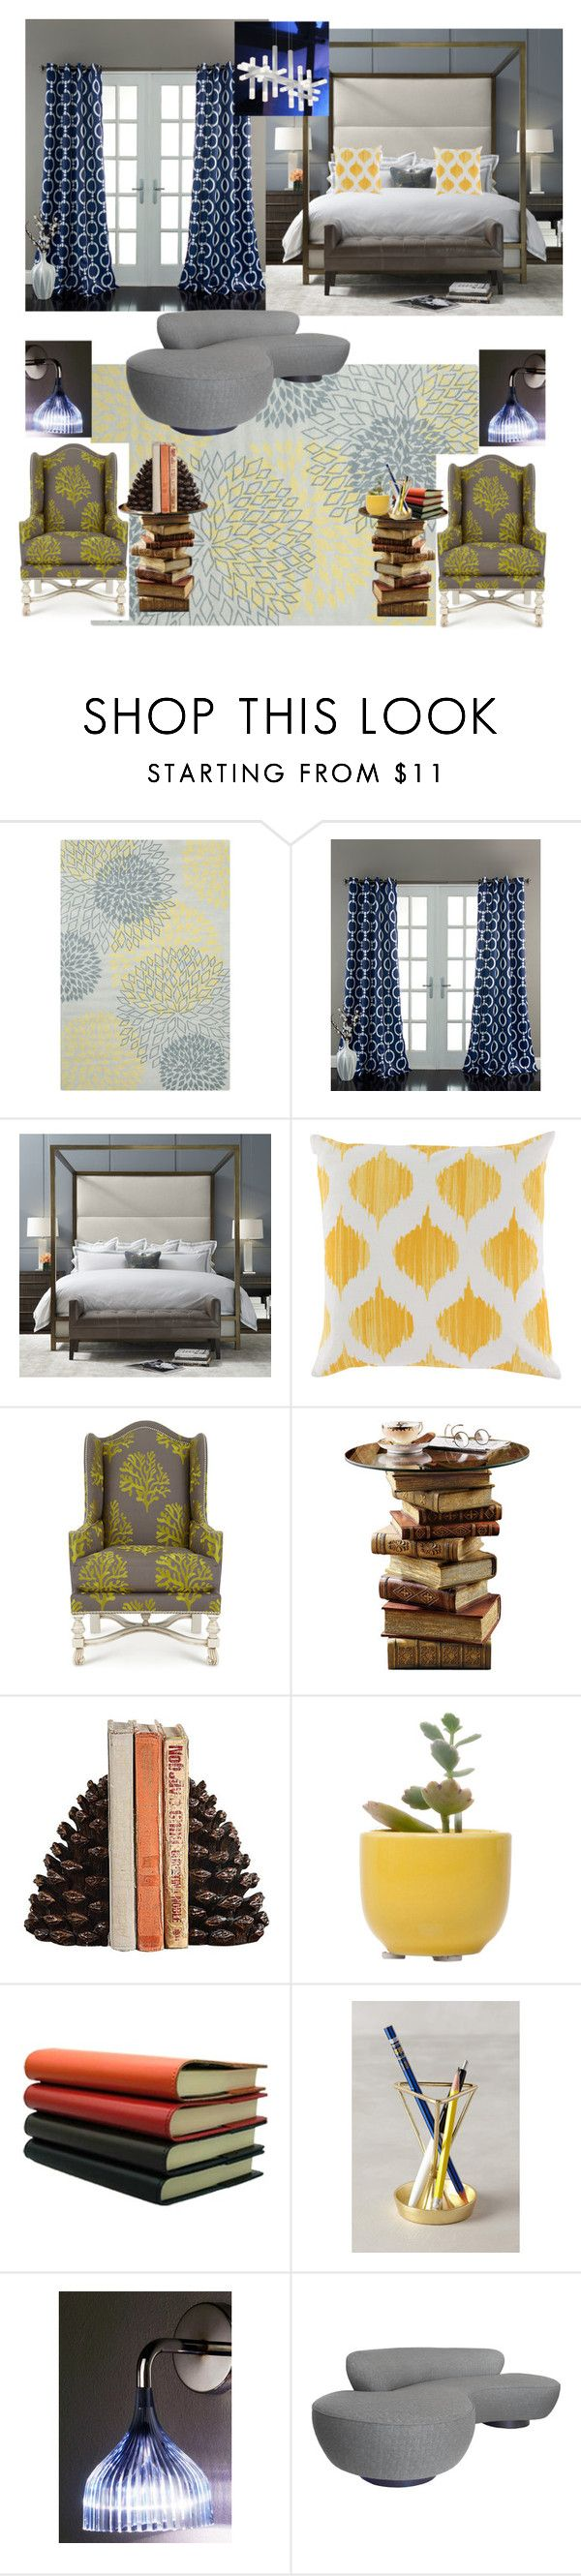 best 20+ yellow master bedroom ideas on pinterest | yellow spare